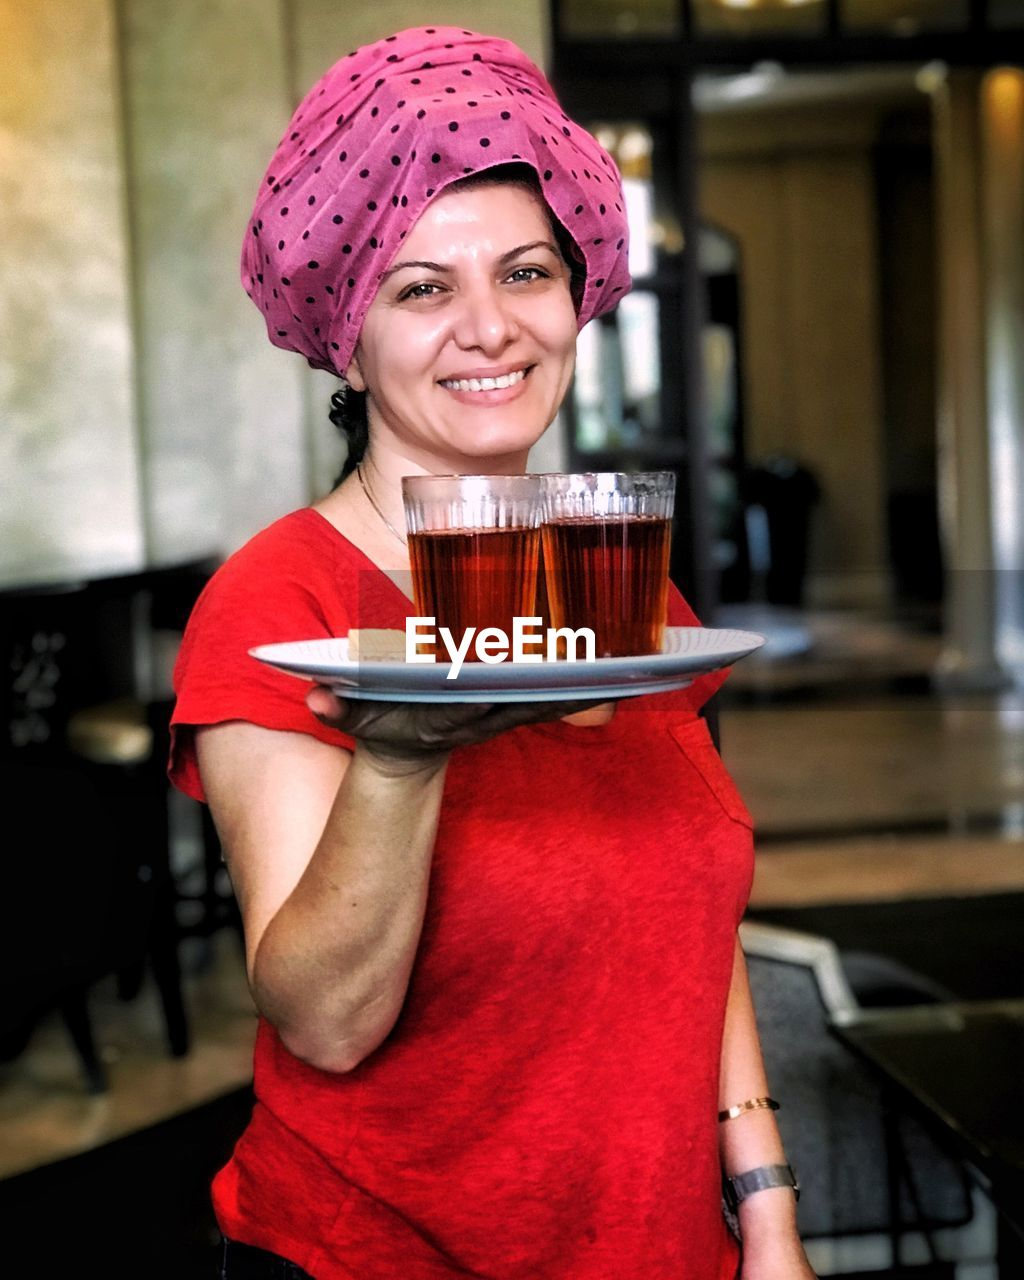 food and drink, portrait, one person, front view, looking at camera, smiling, drink, happiness, refreshment, young adult, holding, focus on foreground, indoors, real people, women, adult, lifestyles, emotion, leisure activity, cup, hot drink